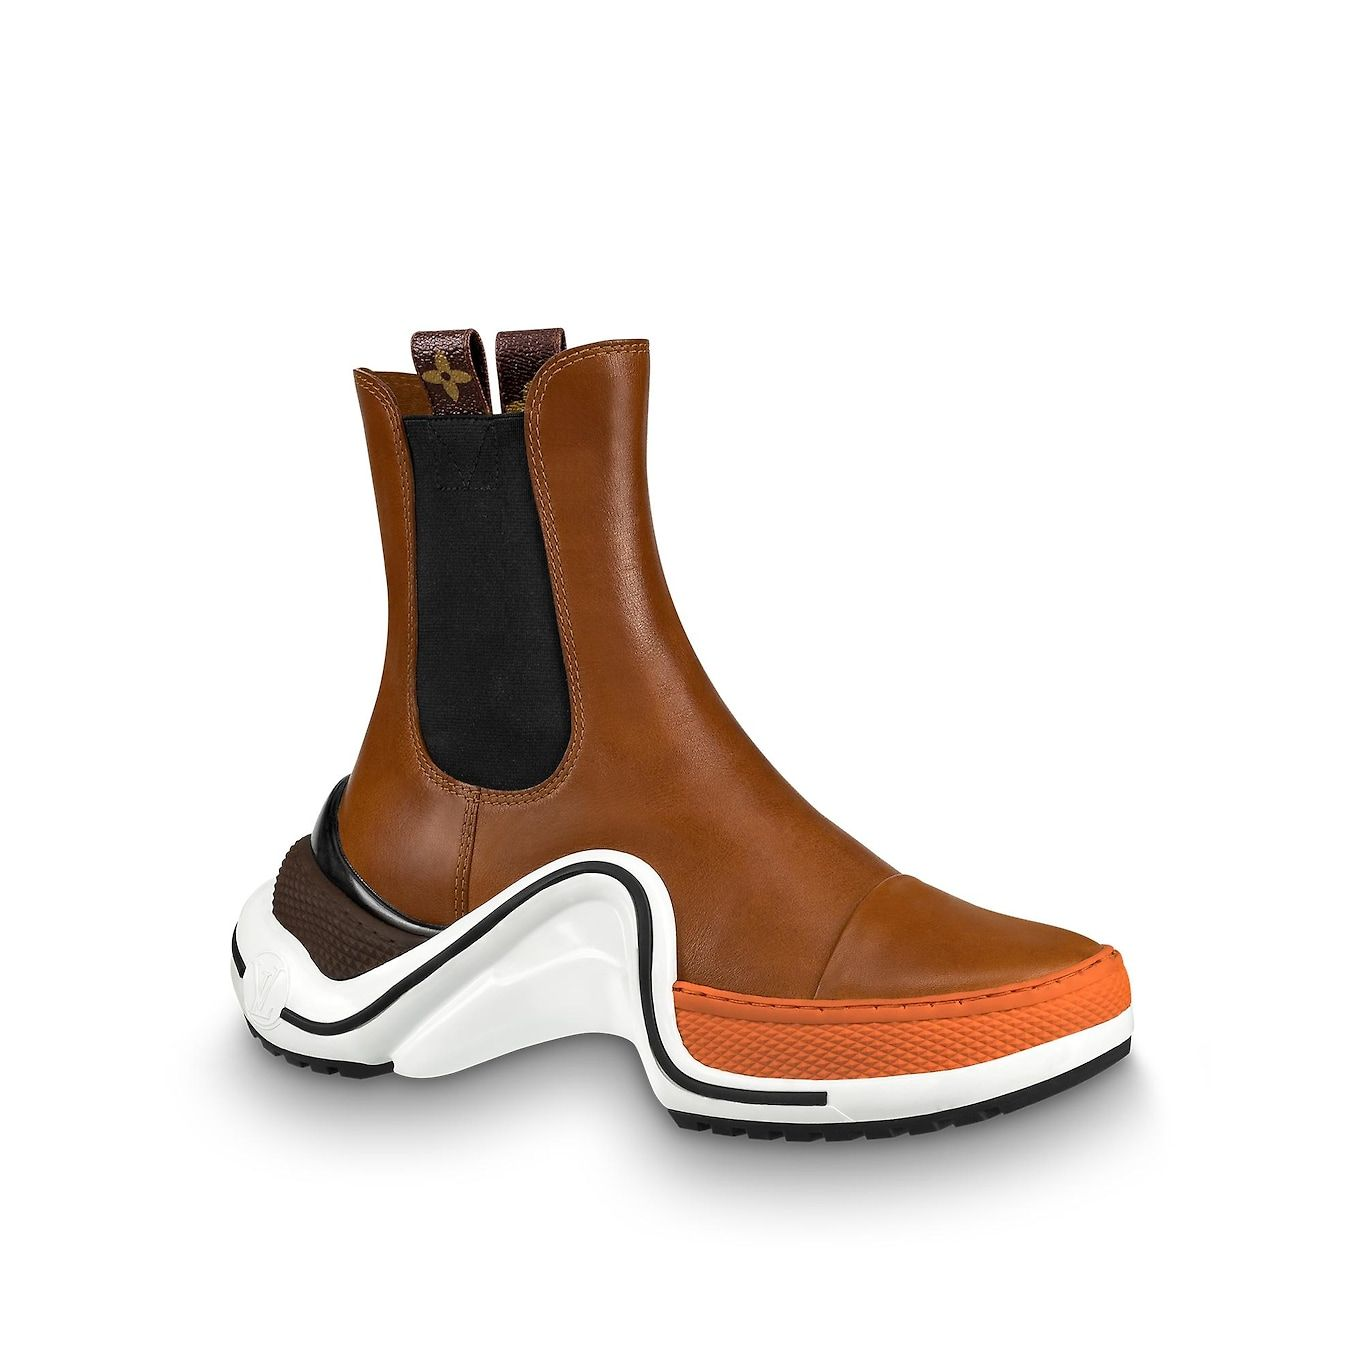 1c236af899b4 View 1 - SHOES ALL COLLECTIONS Lv Archlight Flat Chelsea Boot